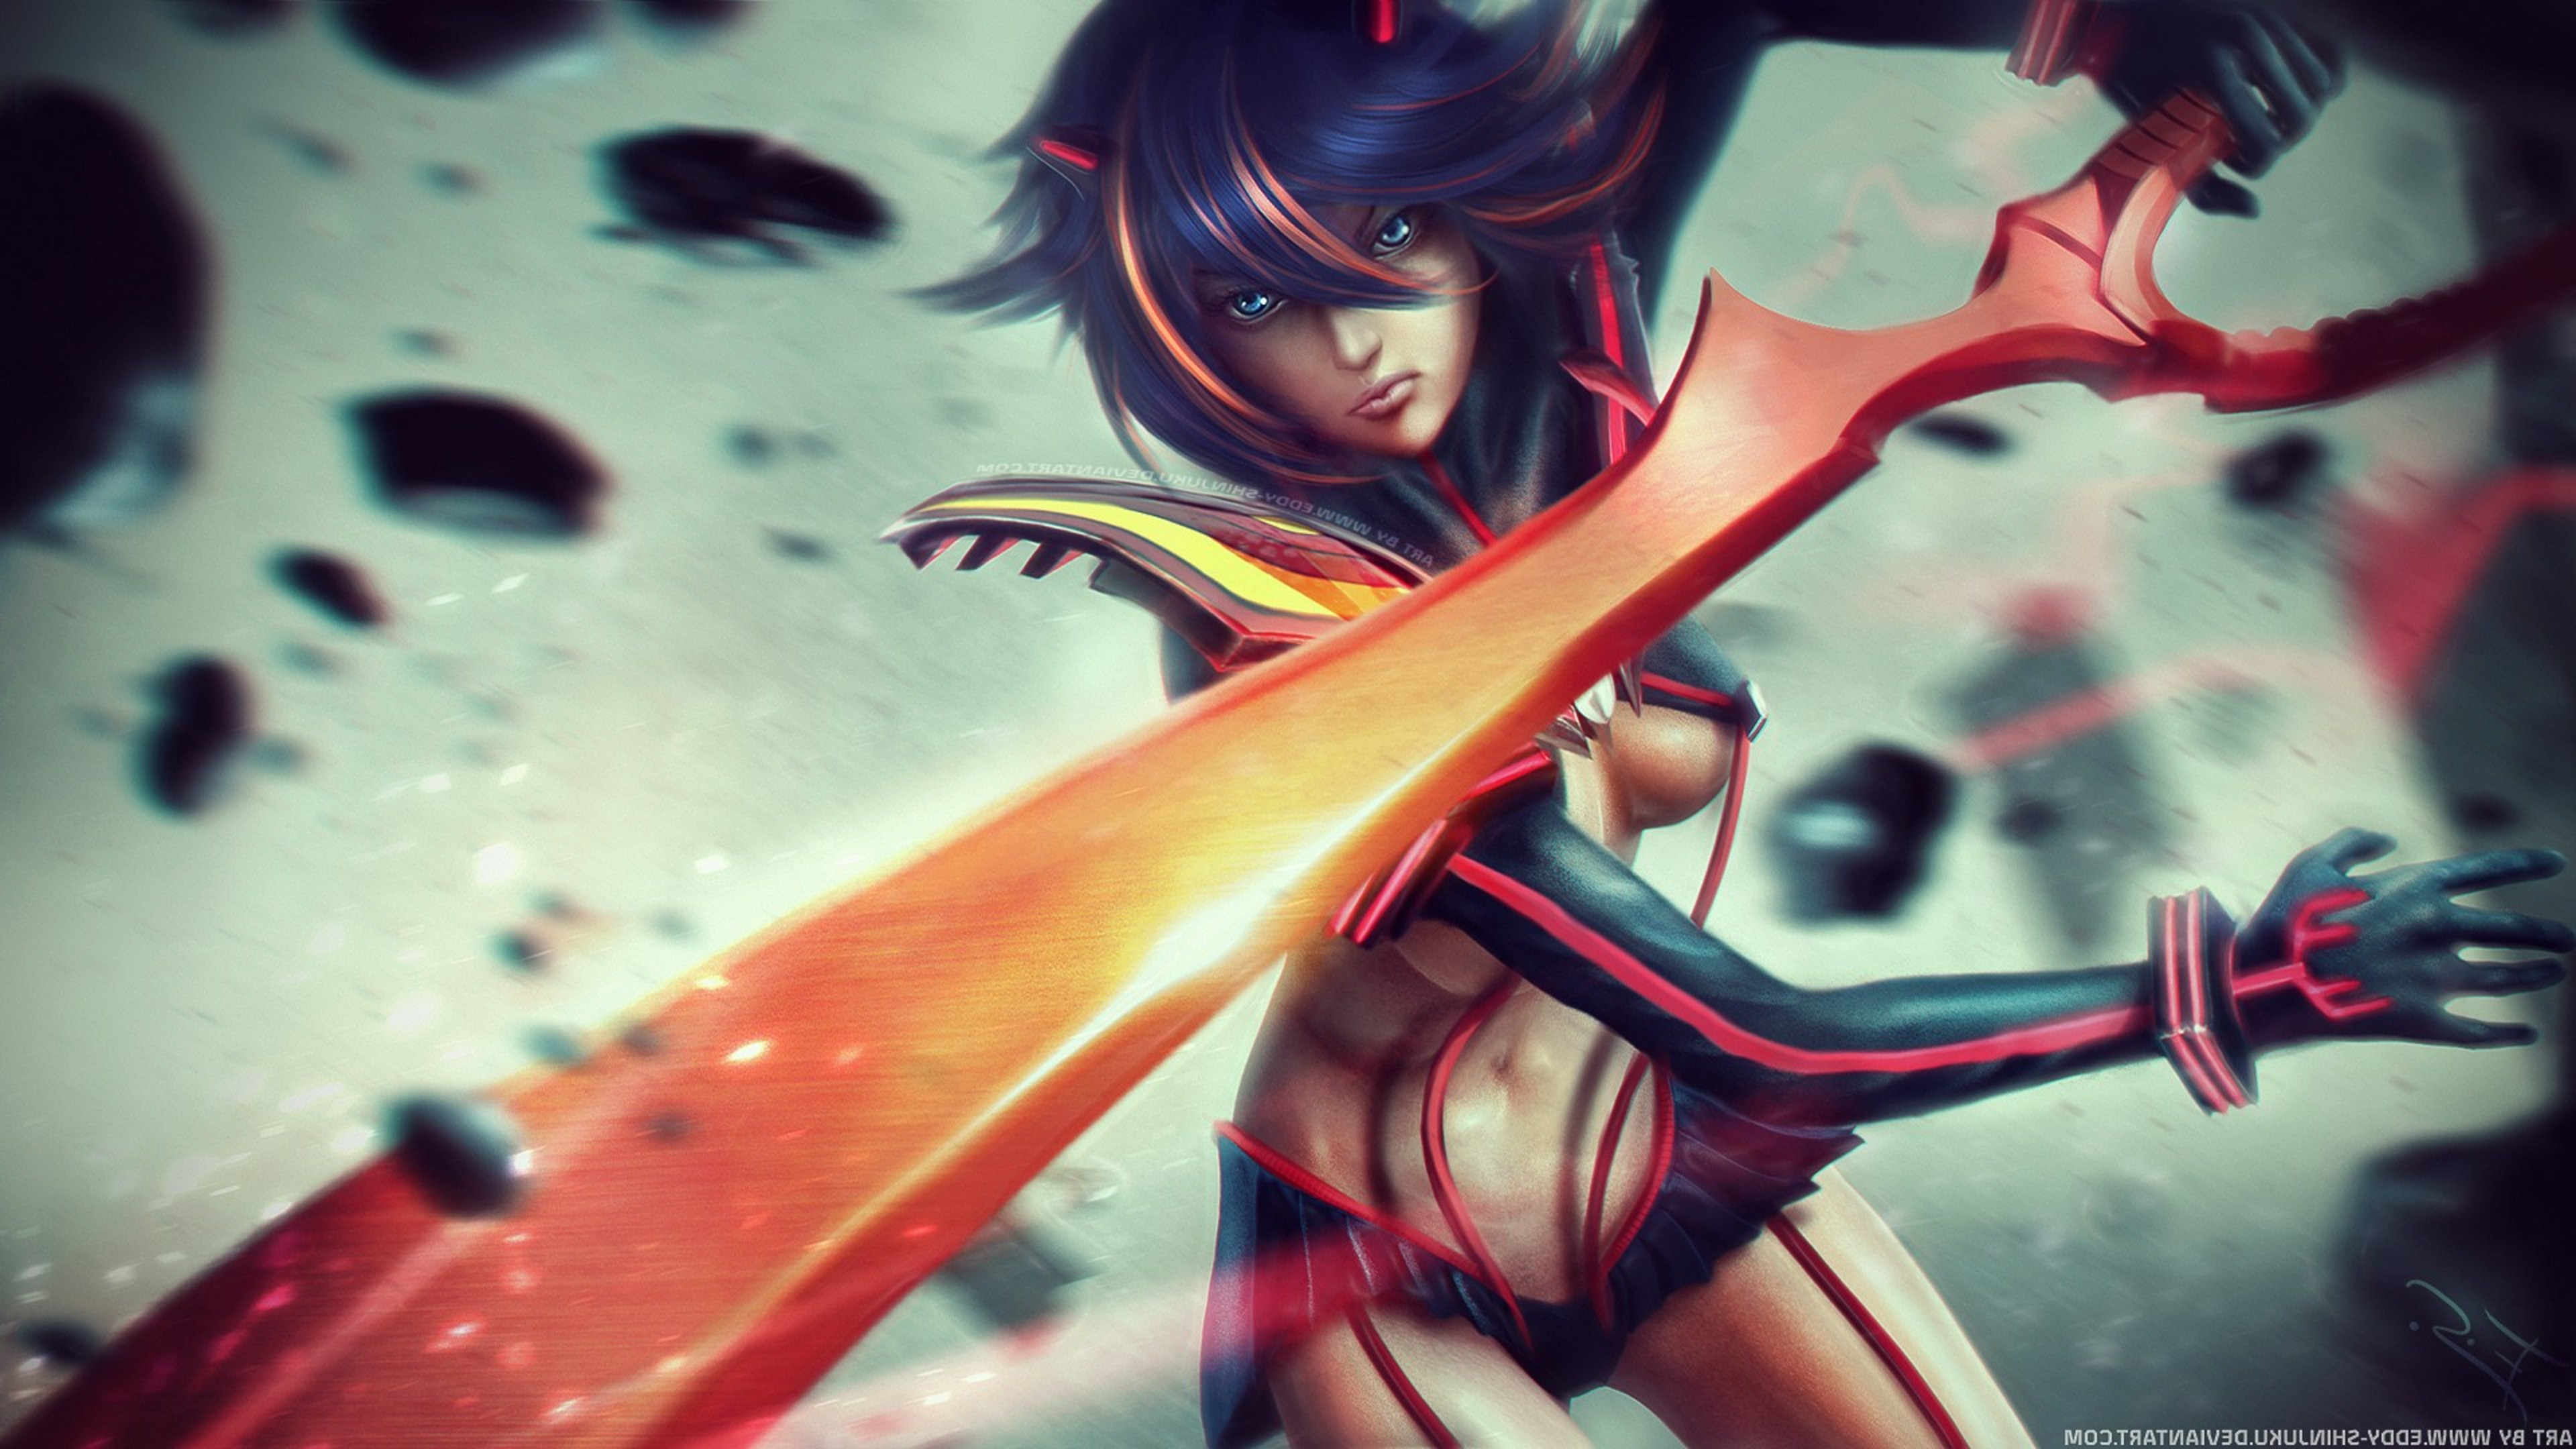 Ryuko Kill La Kill Hd Fantasy Girls 4k Wallpapers Images